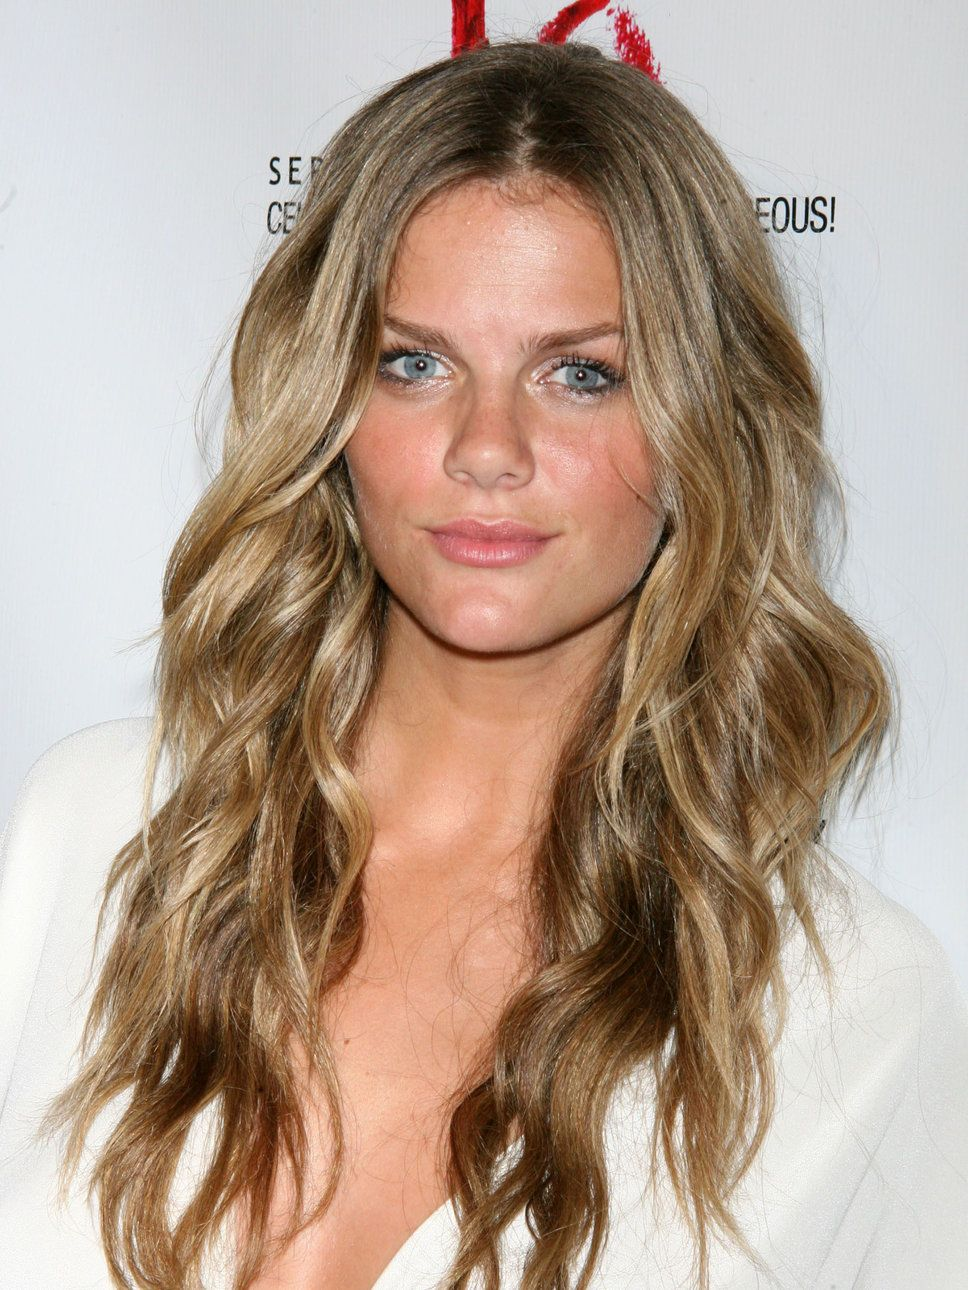 I Wish My Hair Did This Instead Of The Sporadic Waves It Currently